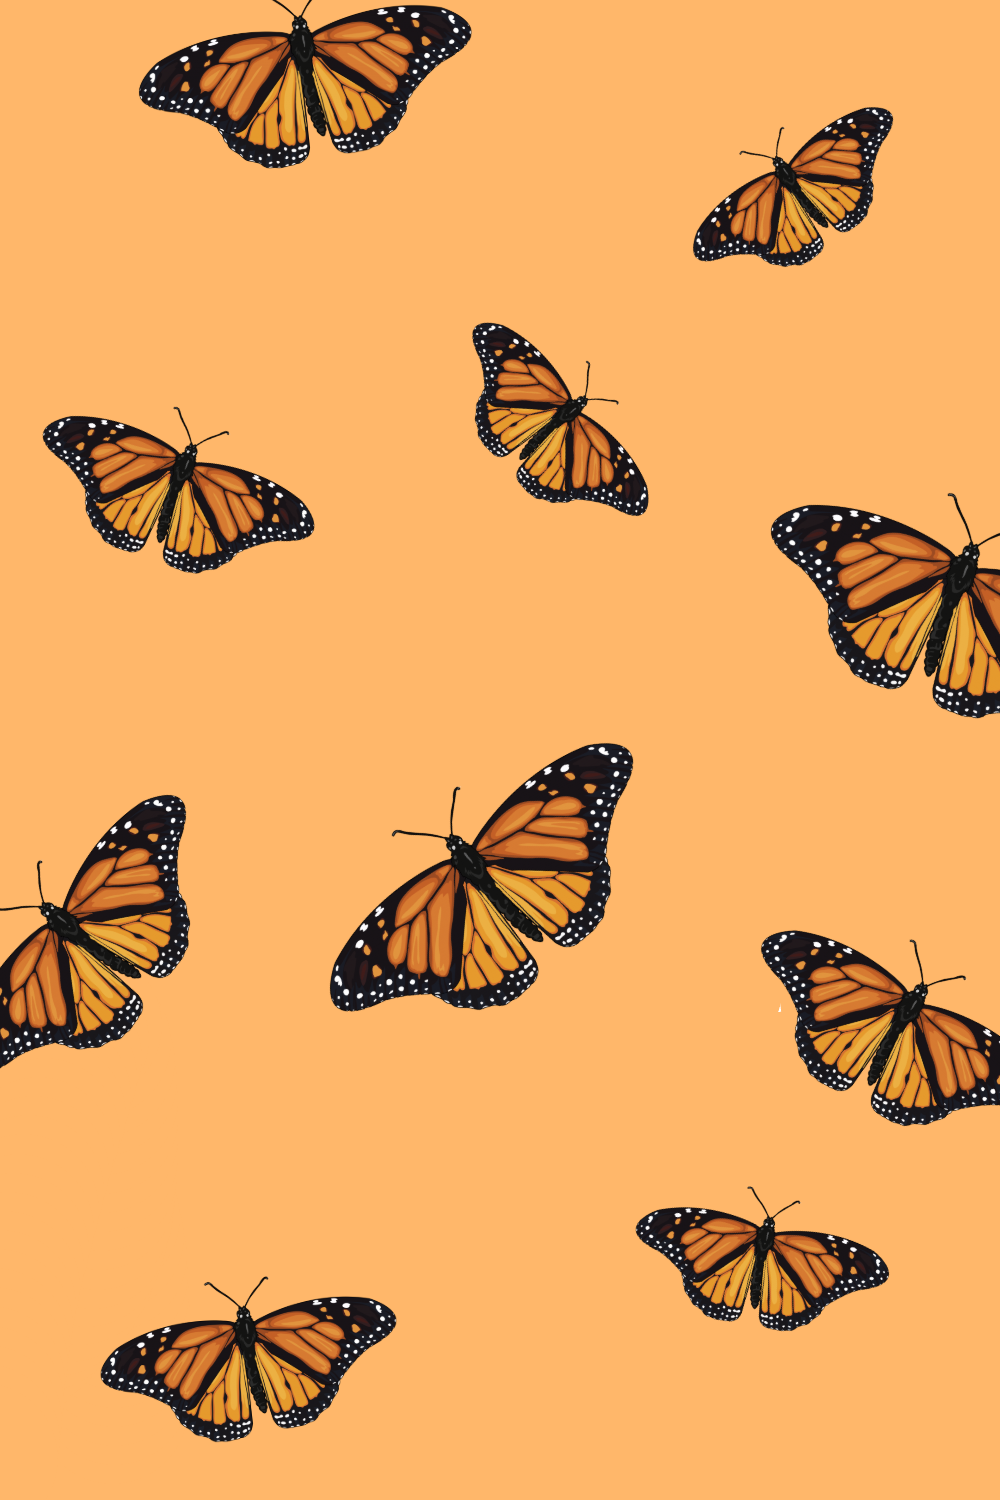 Cute Butterfly Wallpaper For Iphone Aesthetic